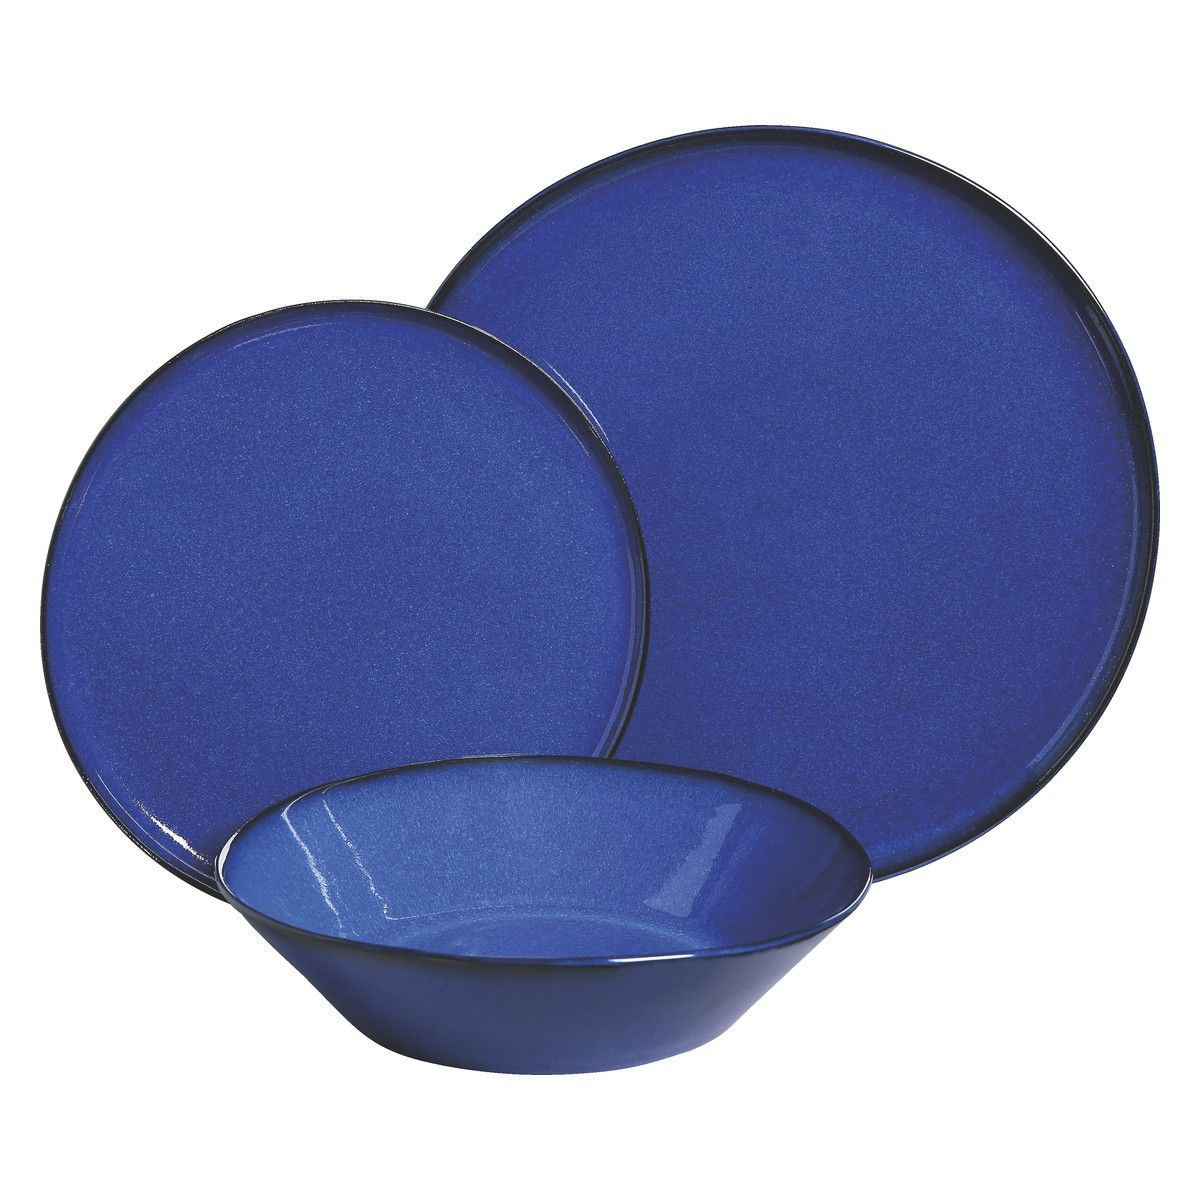 Maddox Blue 12 Piece Dinner Set Buy Now At Habitat Uk Dinner Sets Crockery Dinnerware Set